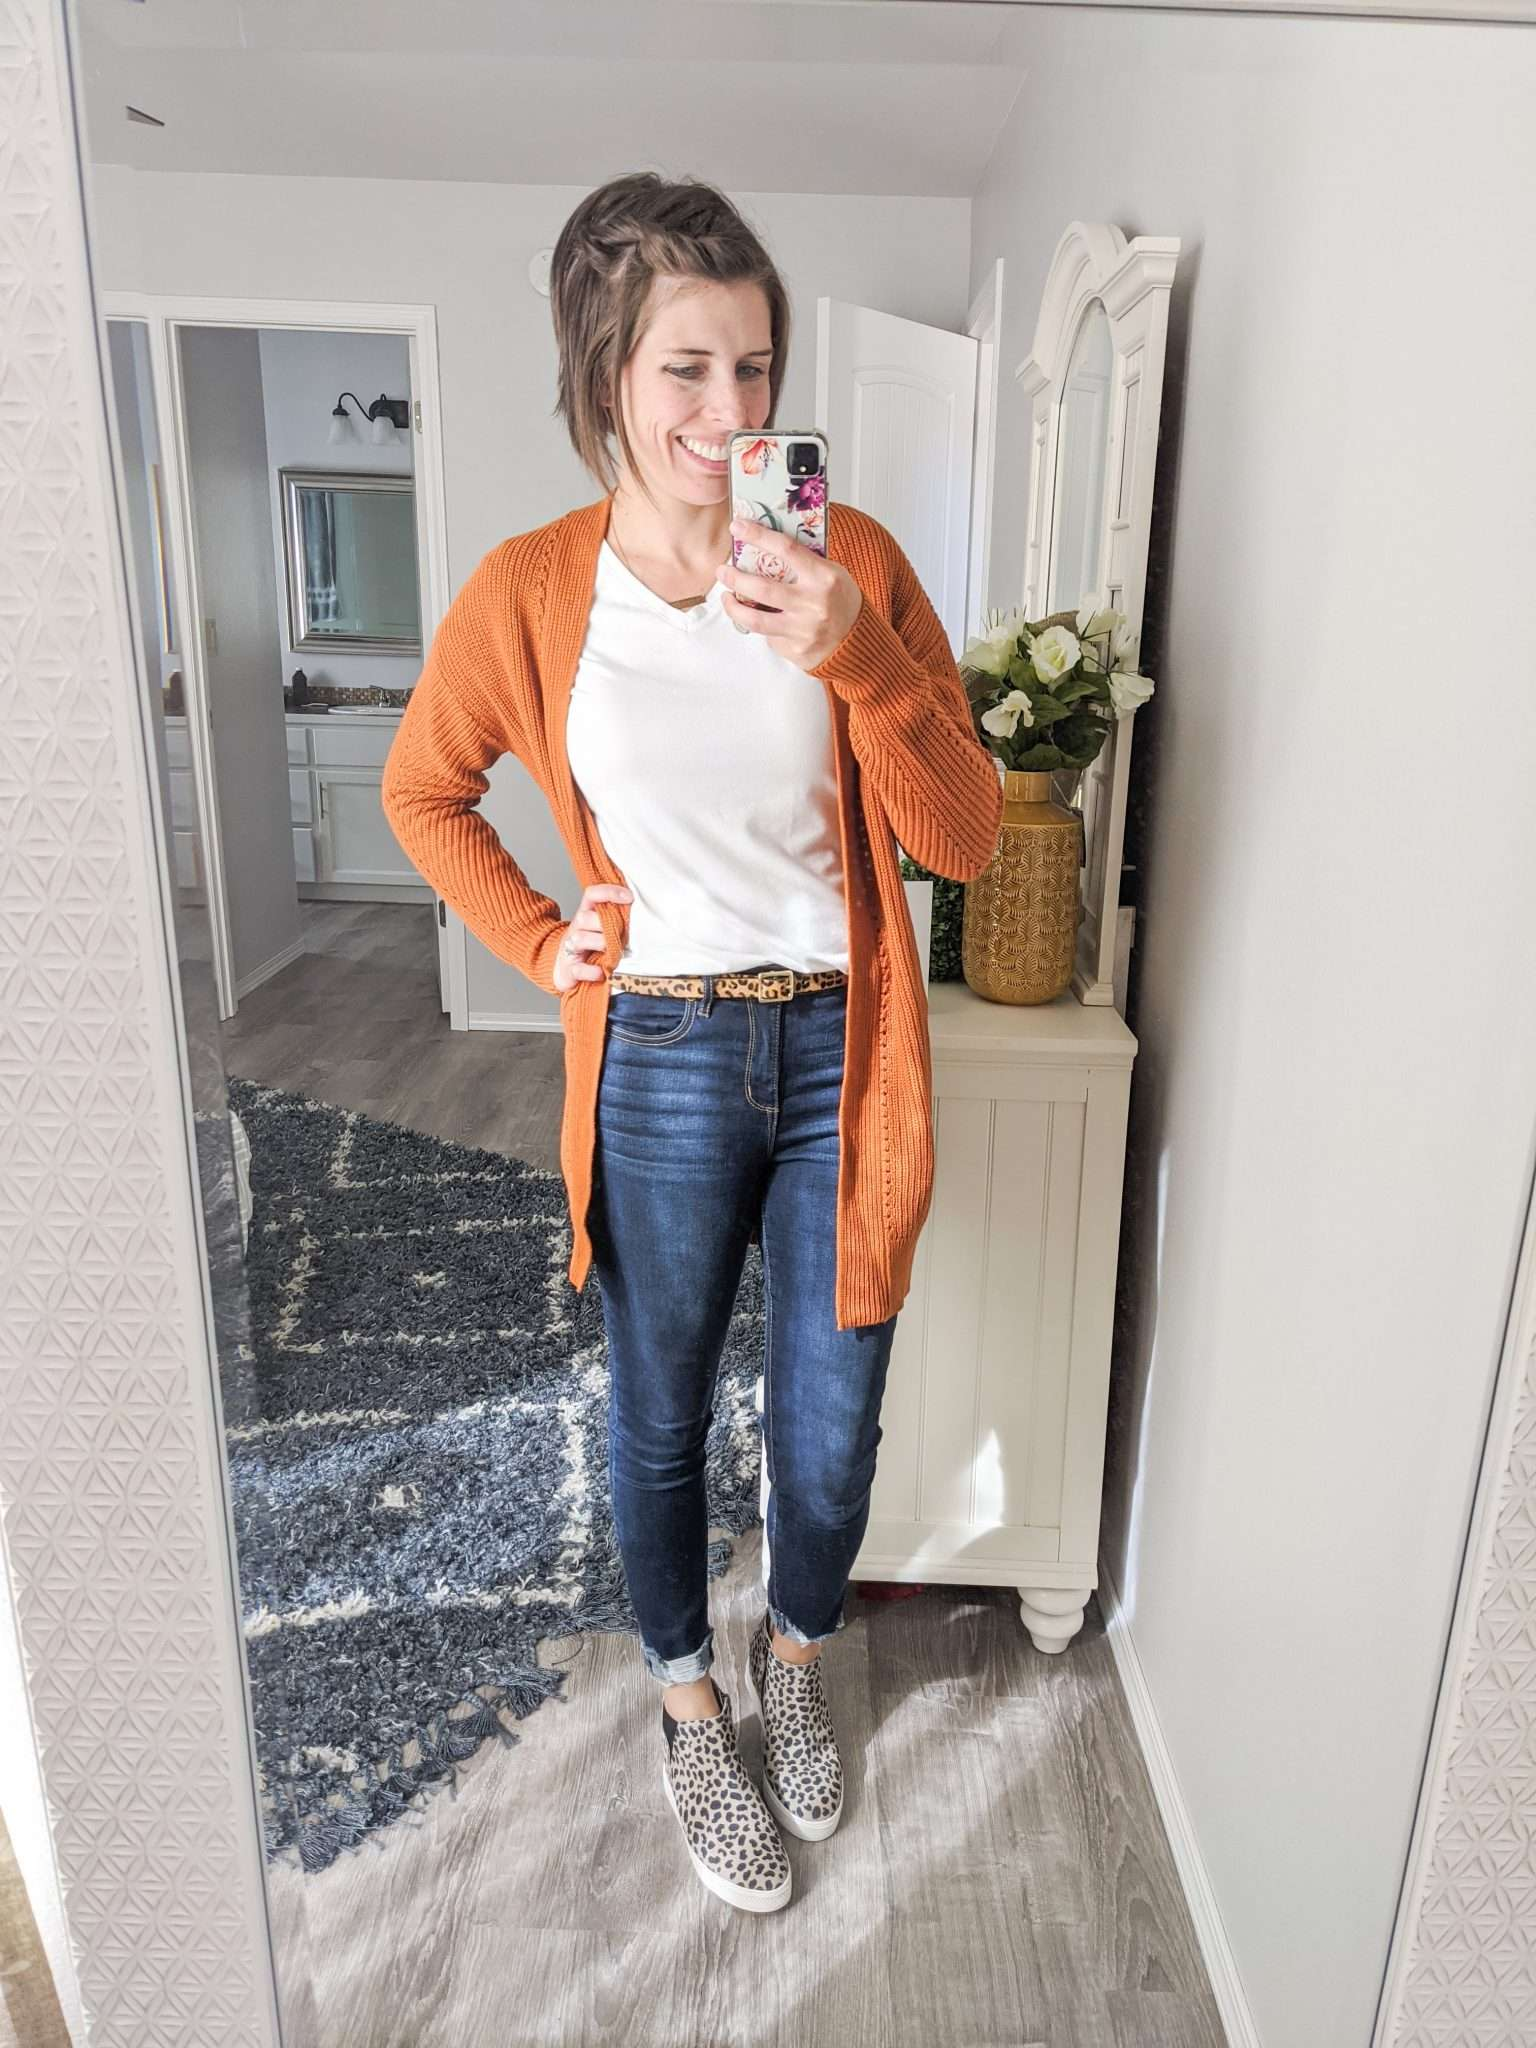 Summer to Fall transition outfits - How to transition summer clothes to fall - Fall-colored cardigans and leopard sneakers (2)